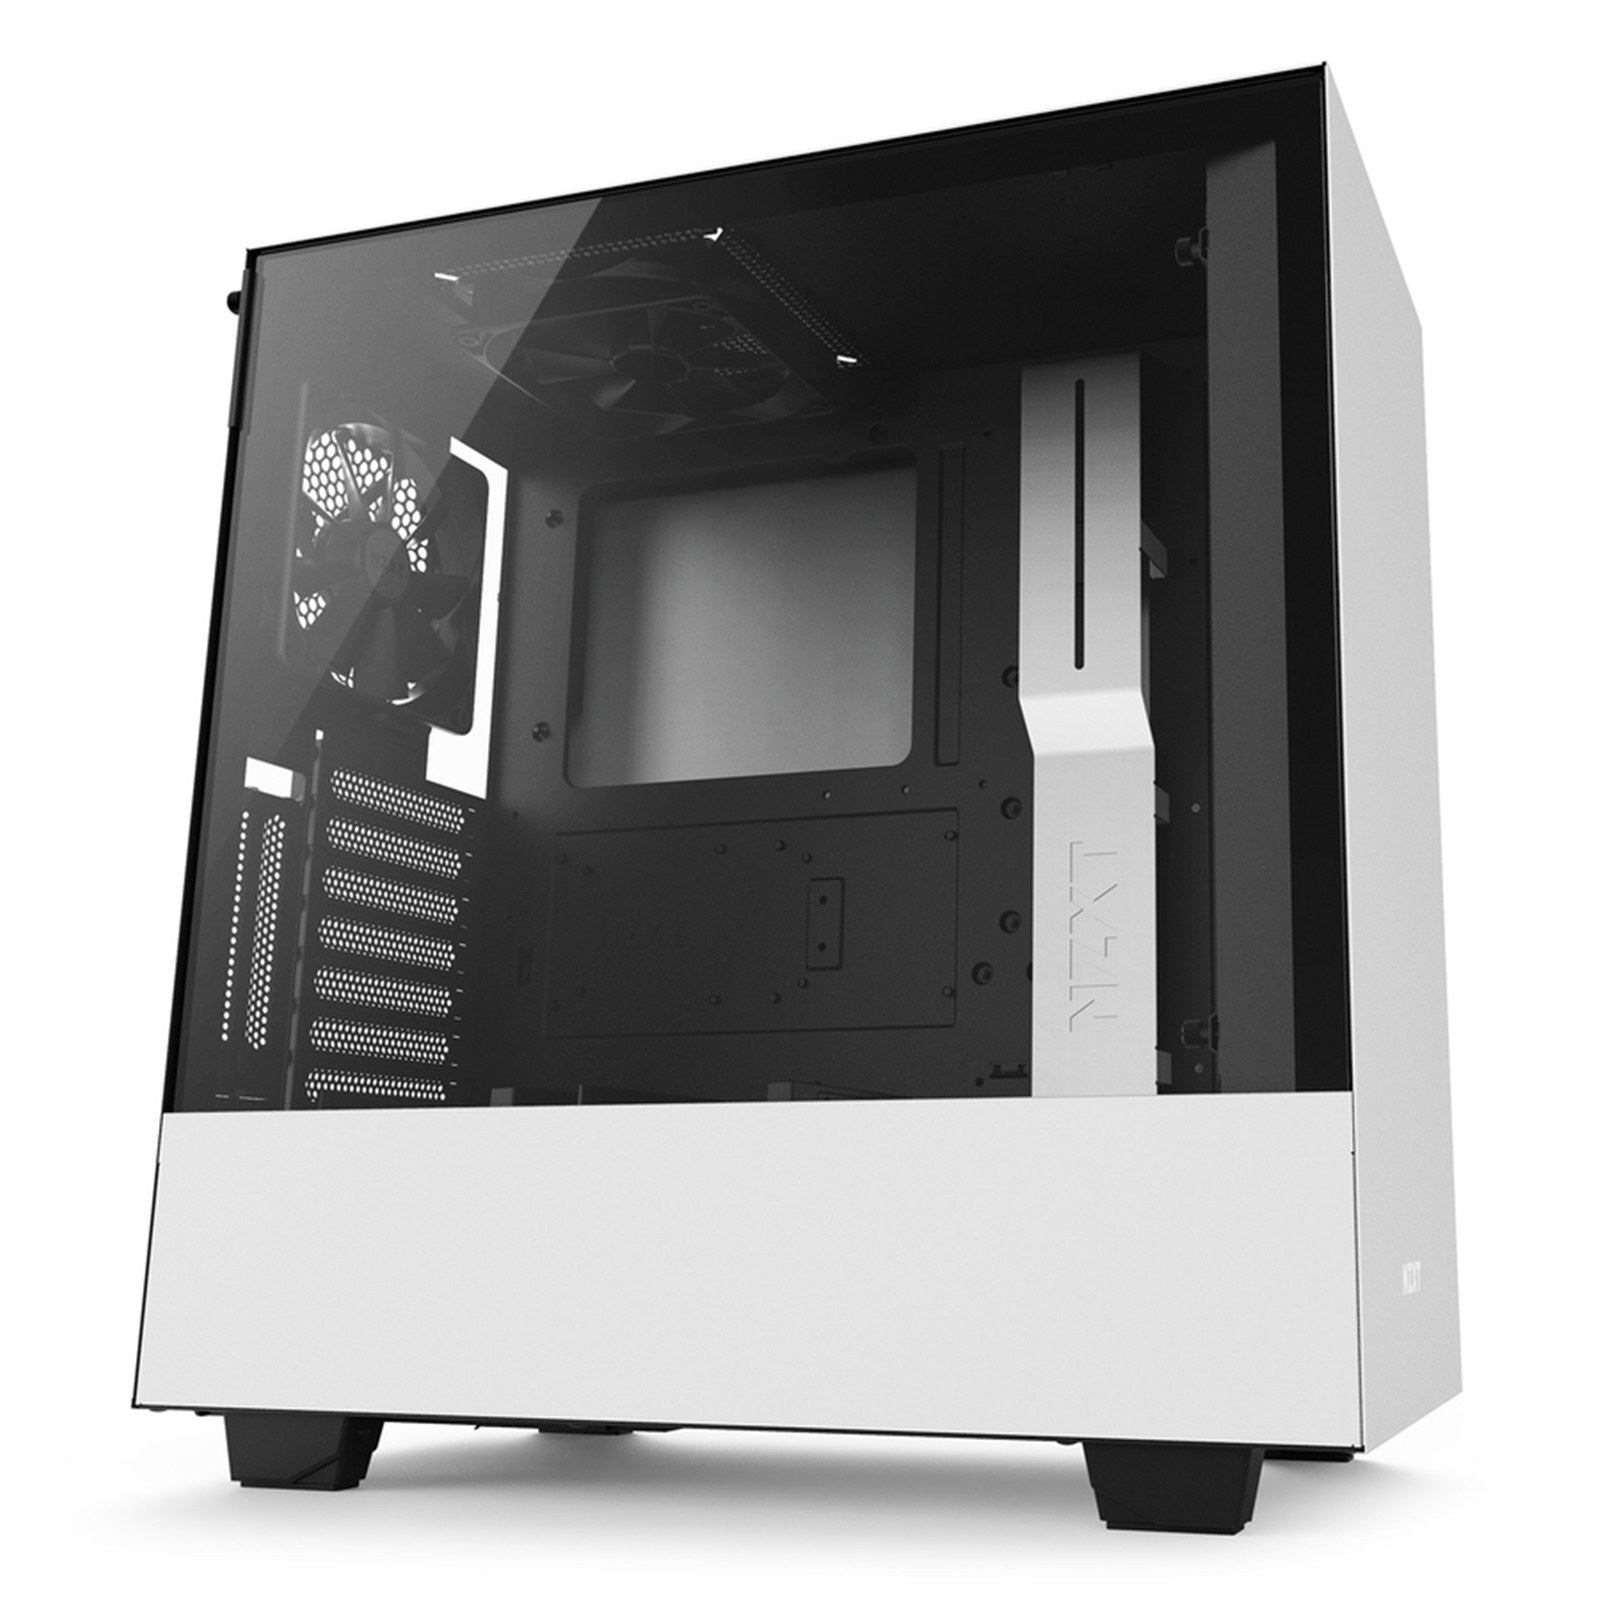 Online dating app nzxt